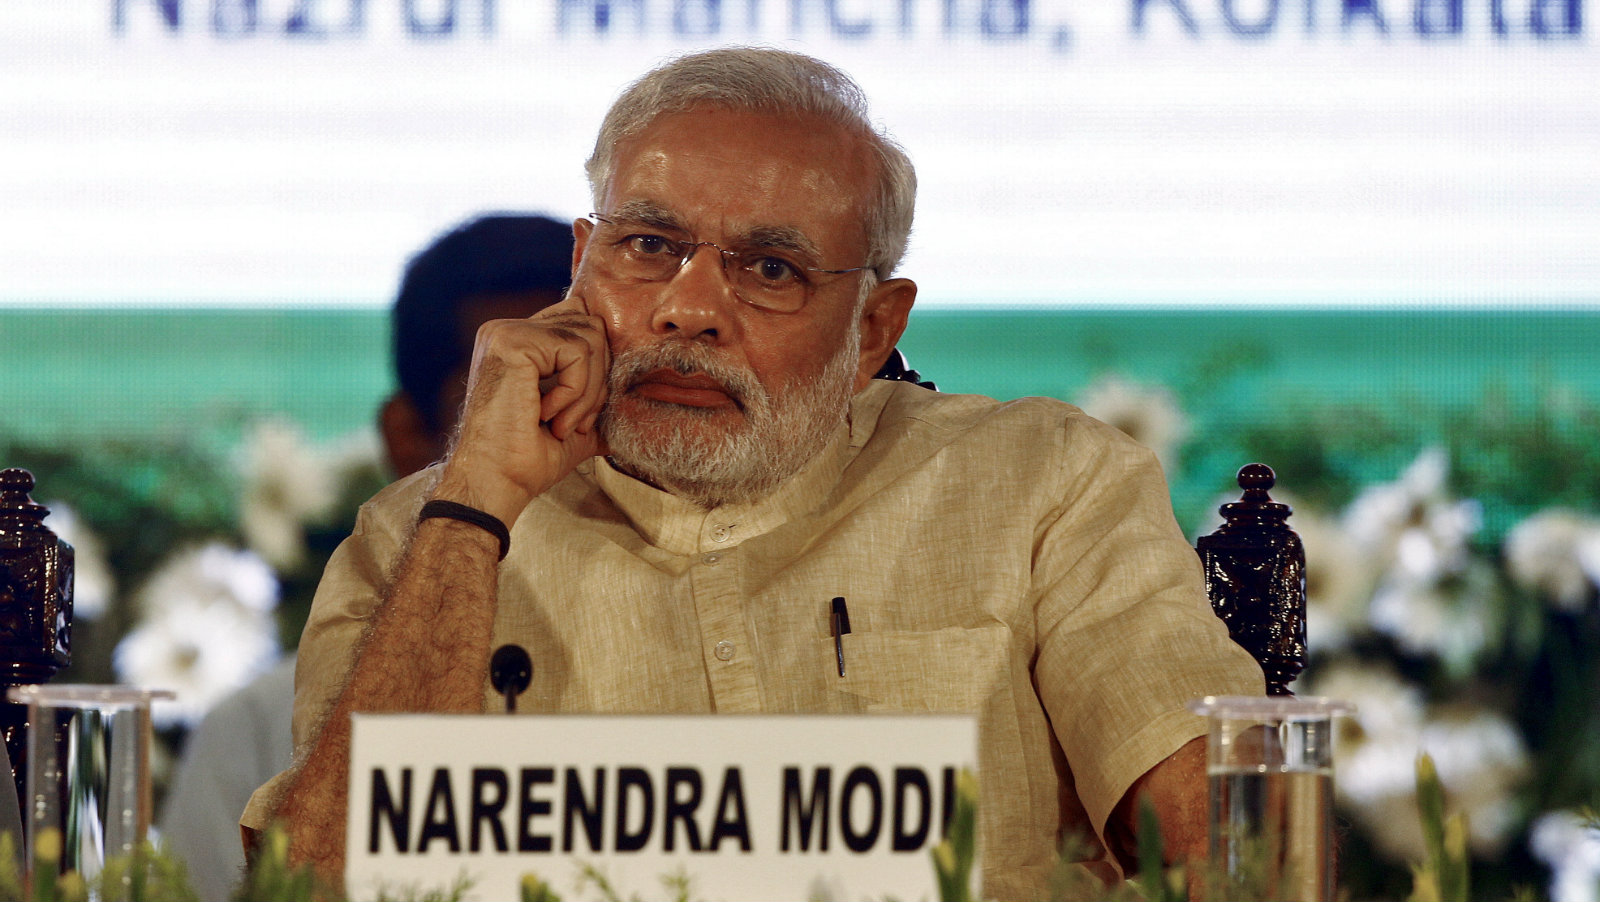 India's Prime Minister Narendra Modi listens to a speaker ahead of launching three new national social security schemes at a function in Kolkata May 9, 2015. Modi on Saturday launched Pradhan Mantri Jeevan Jyoti Bima Yojana (PMJJBY), Pradhan Mantri Suraksha Bima Yojana (PMSBY) and Atal Pension Yojana (APY) during the function, local media reported.